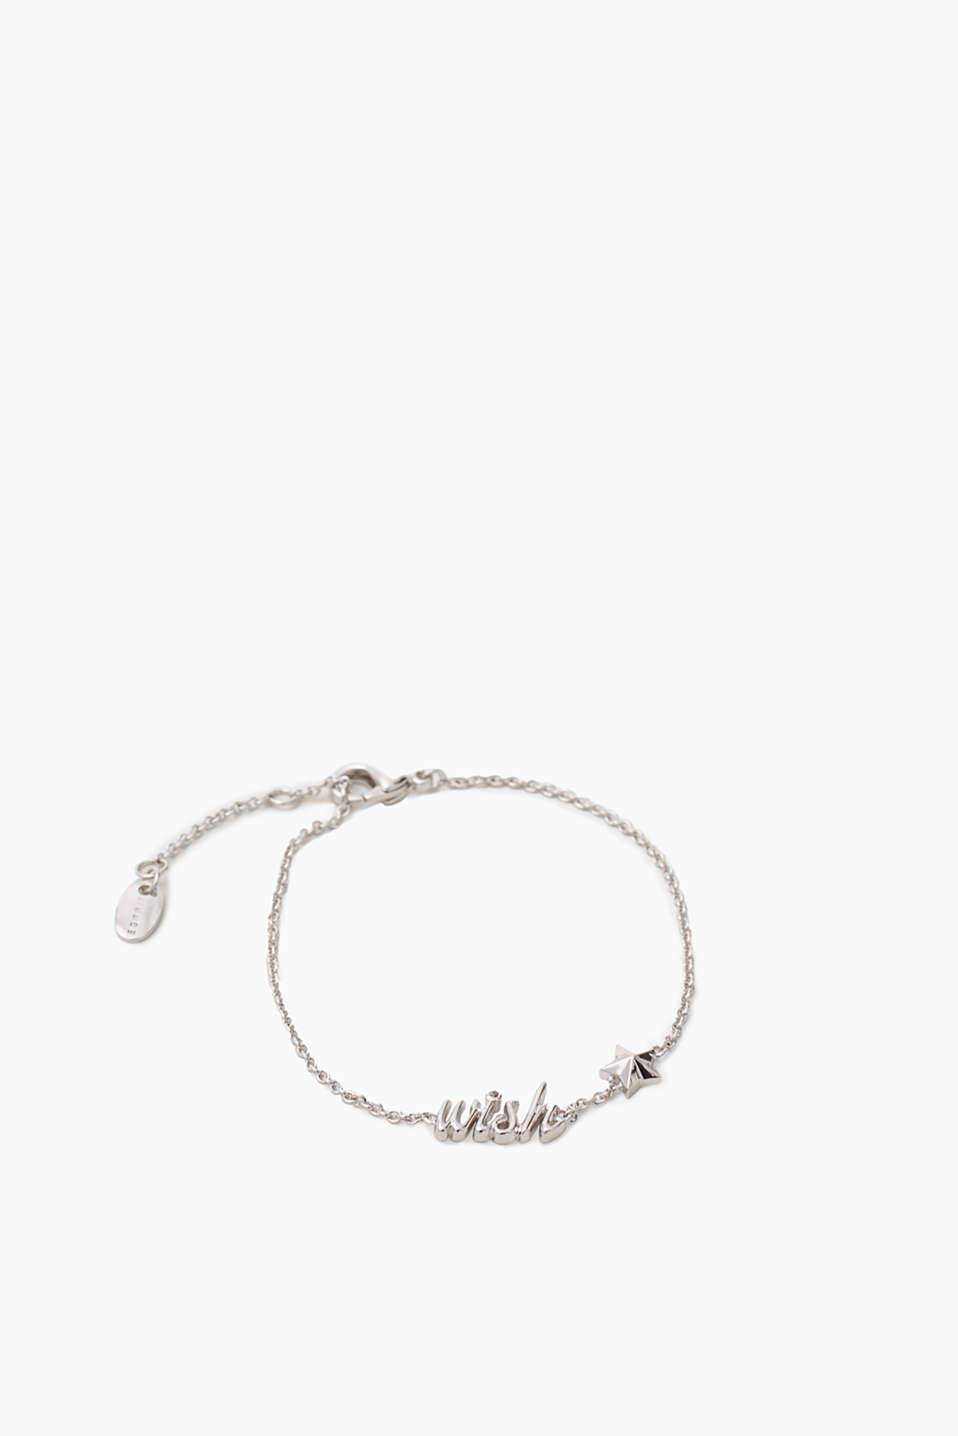 High-quality metal bracelet with wish and star charms, length approx. 160 mm